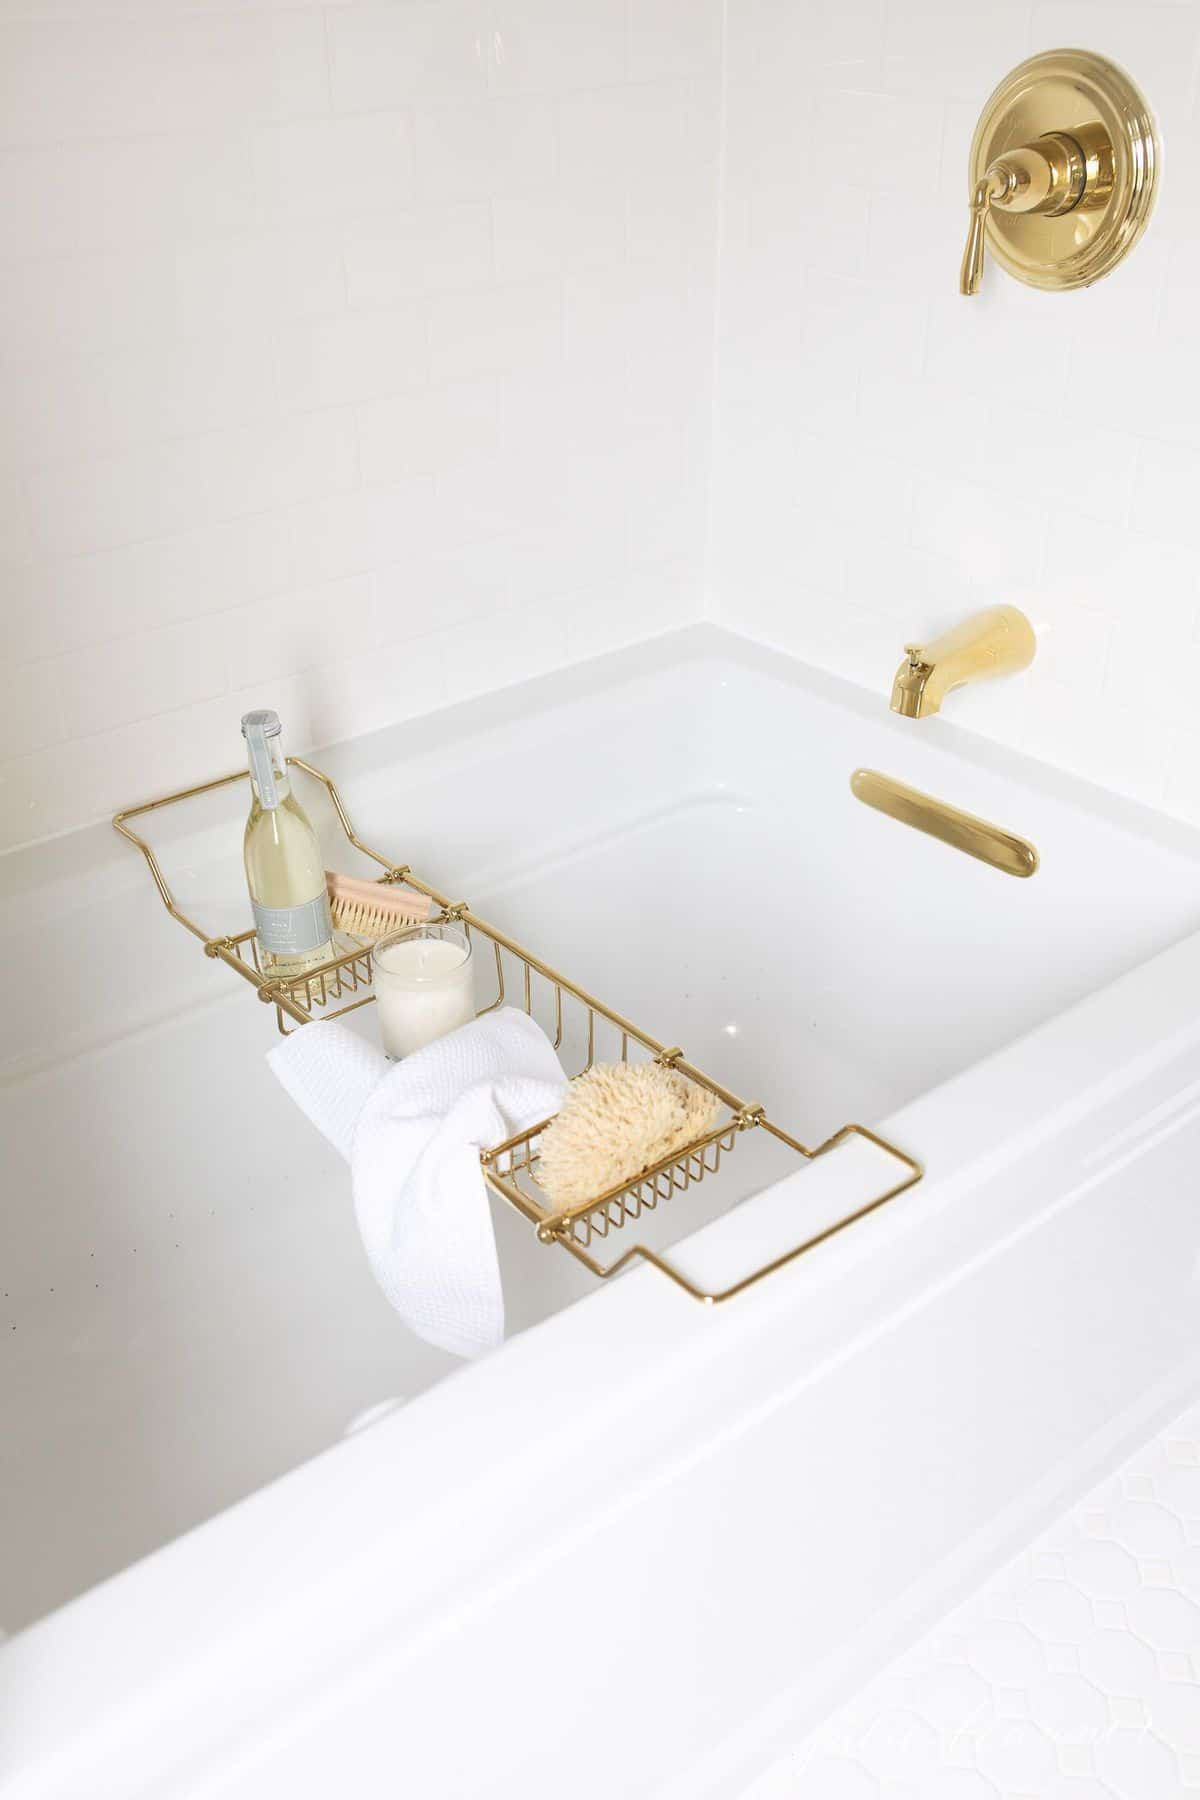 Air tub with brass bath fittings and a brass bath tray filled with relaxing spa treatments. #spabath #spatub